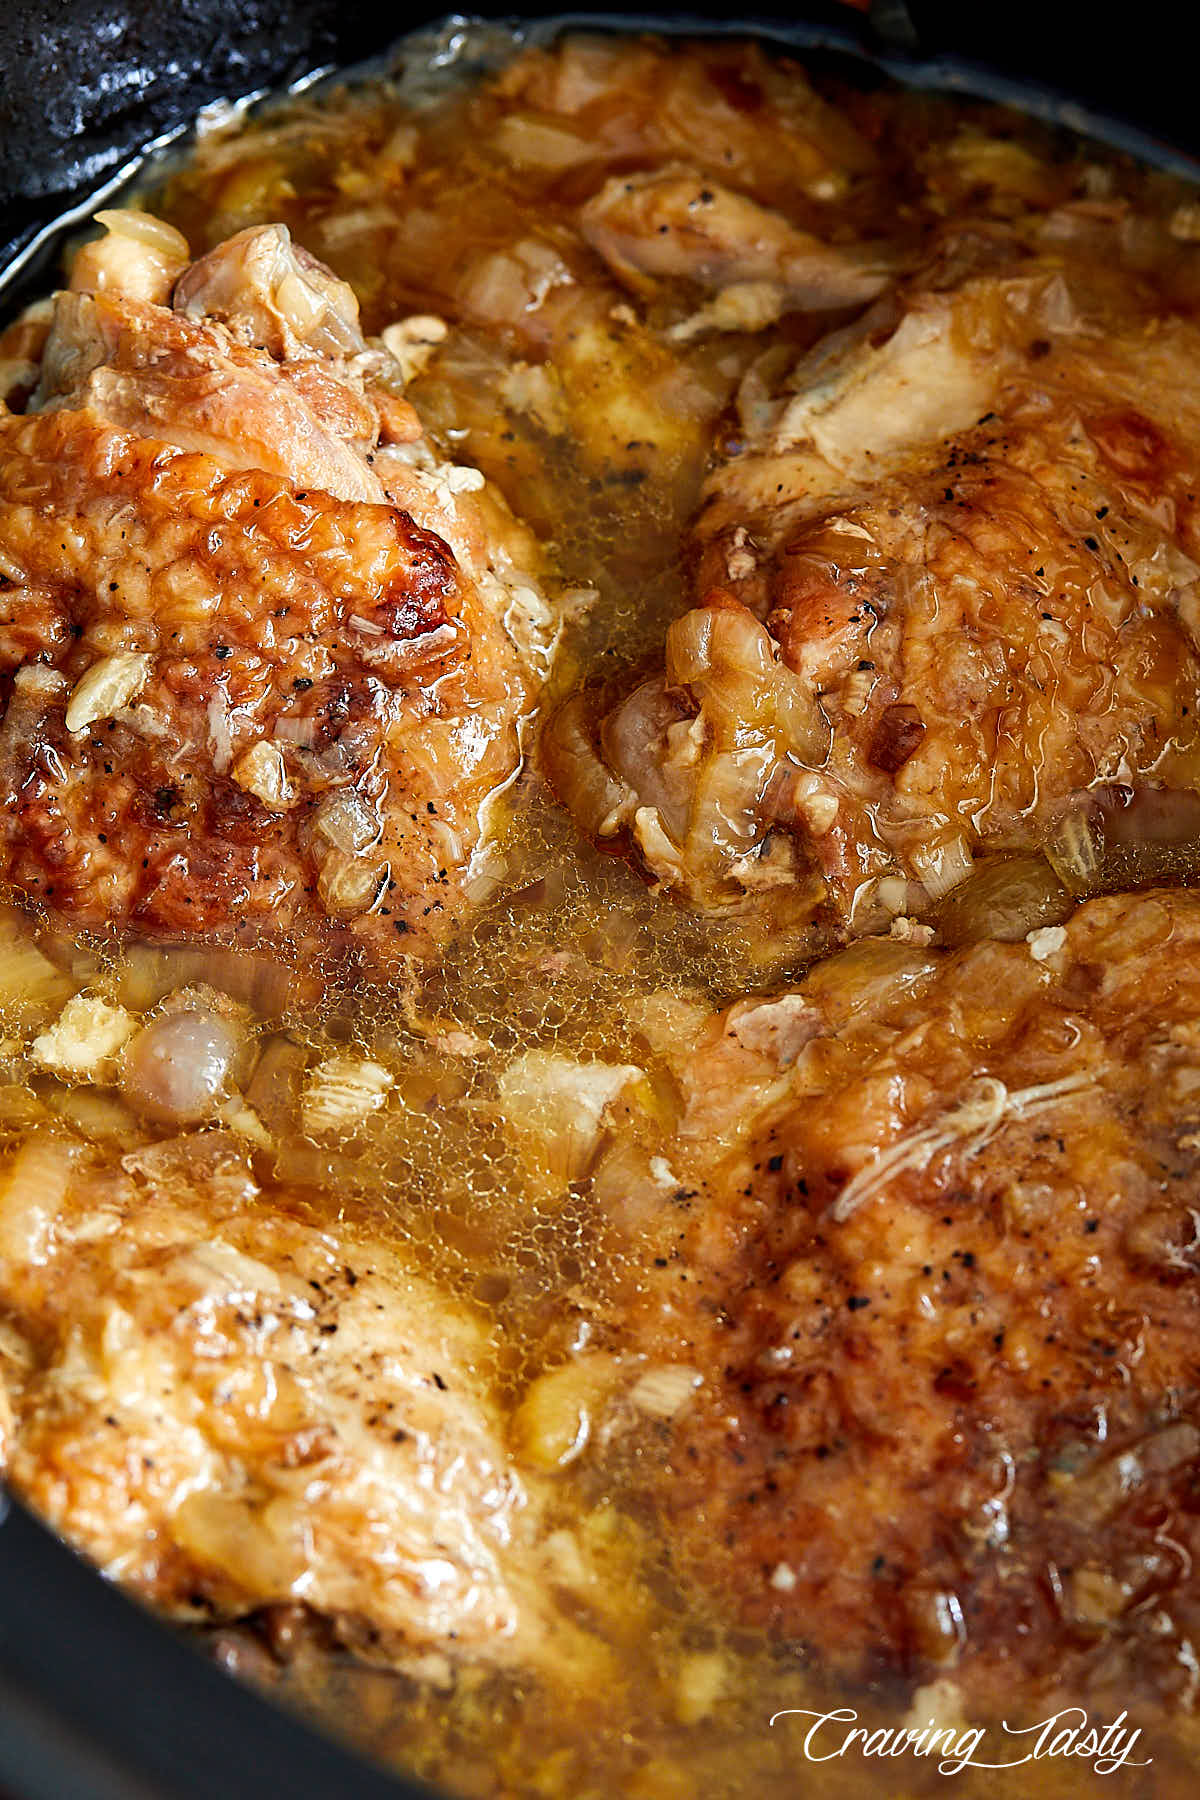 Chicken thighs inside a slow cooker, covered in juices.